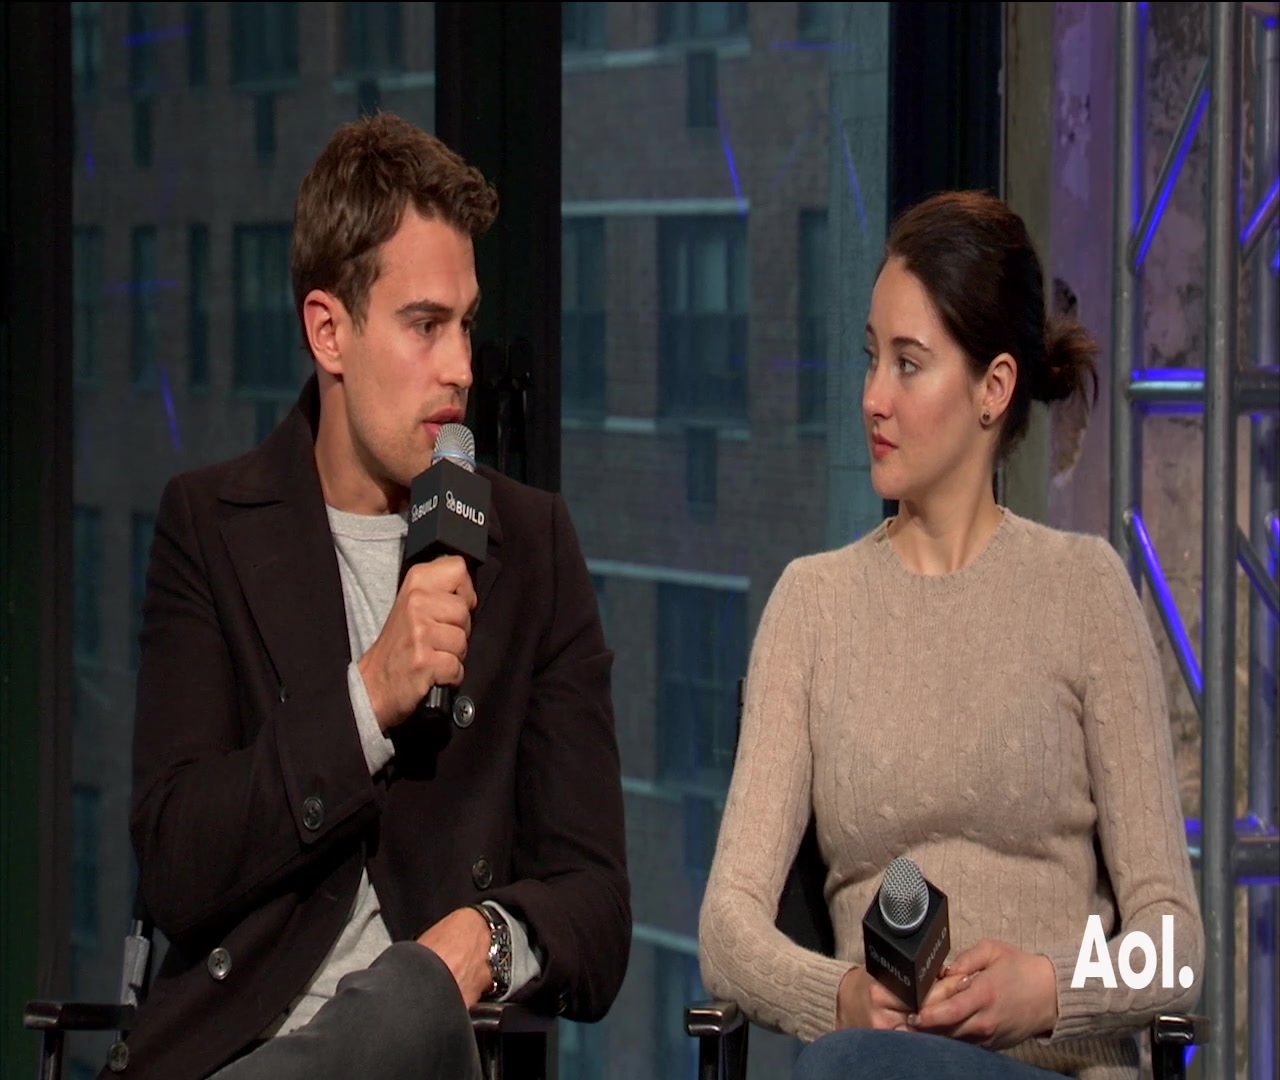 Shailene Woodley and Theo James on Working Together in The Divergent Series